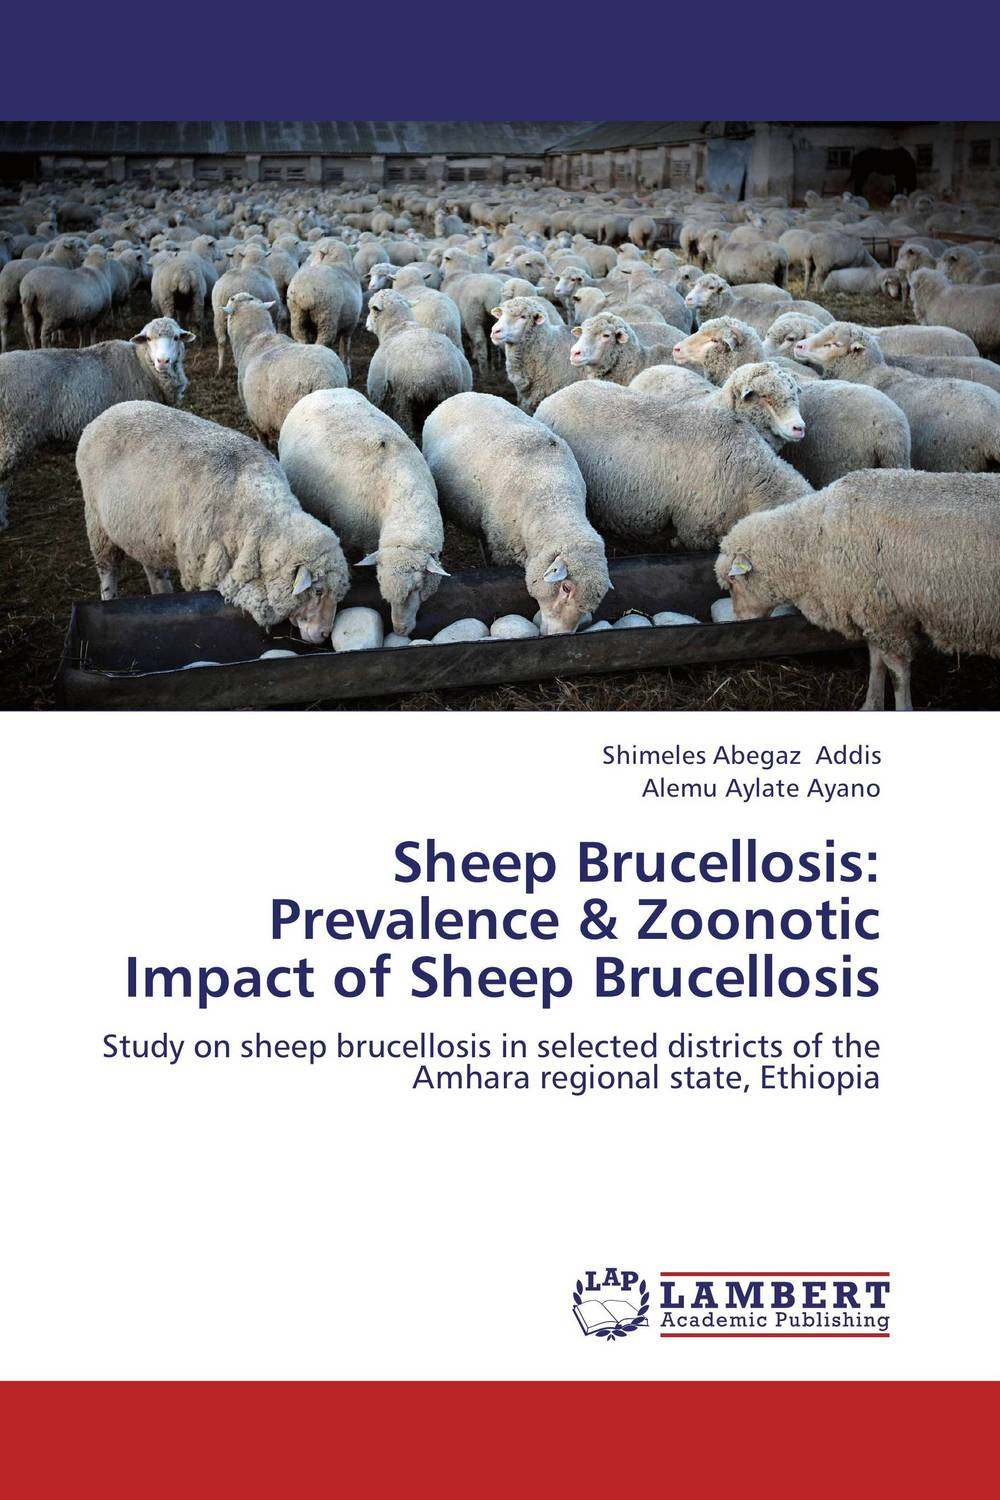 Sheep Brucellosis: Prevalence & Zoonotic Impact of Sheep Brucellosis kromax office 3